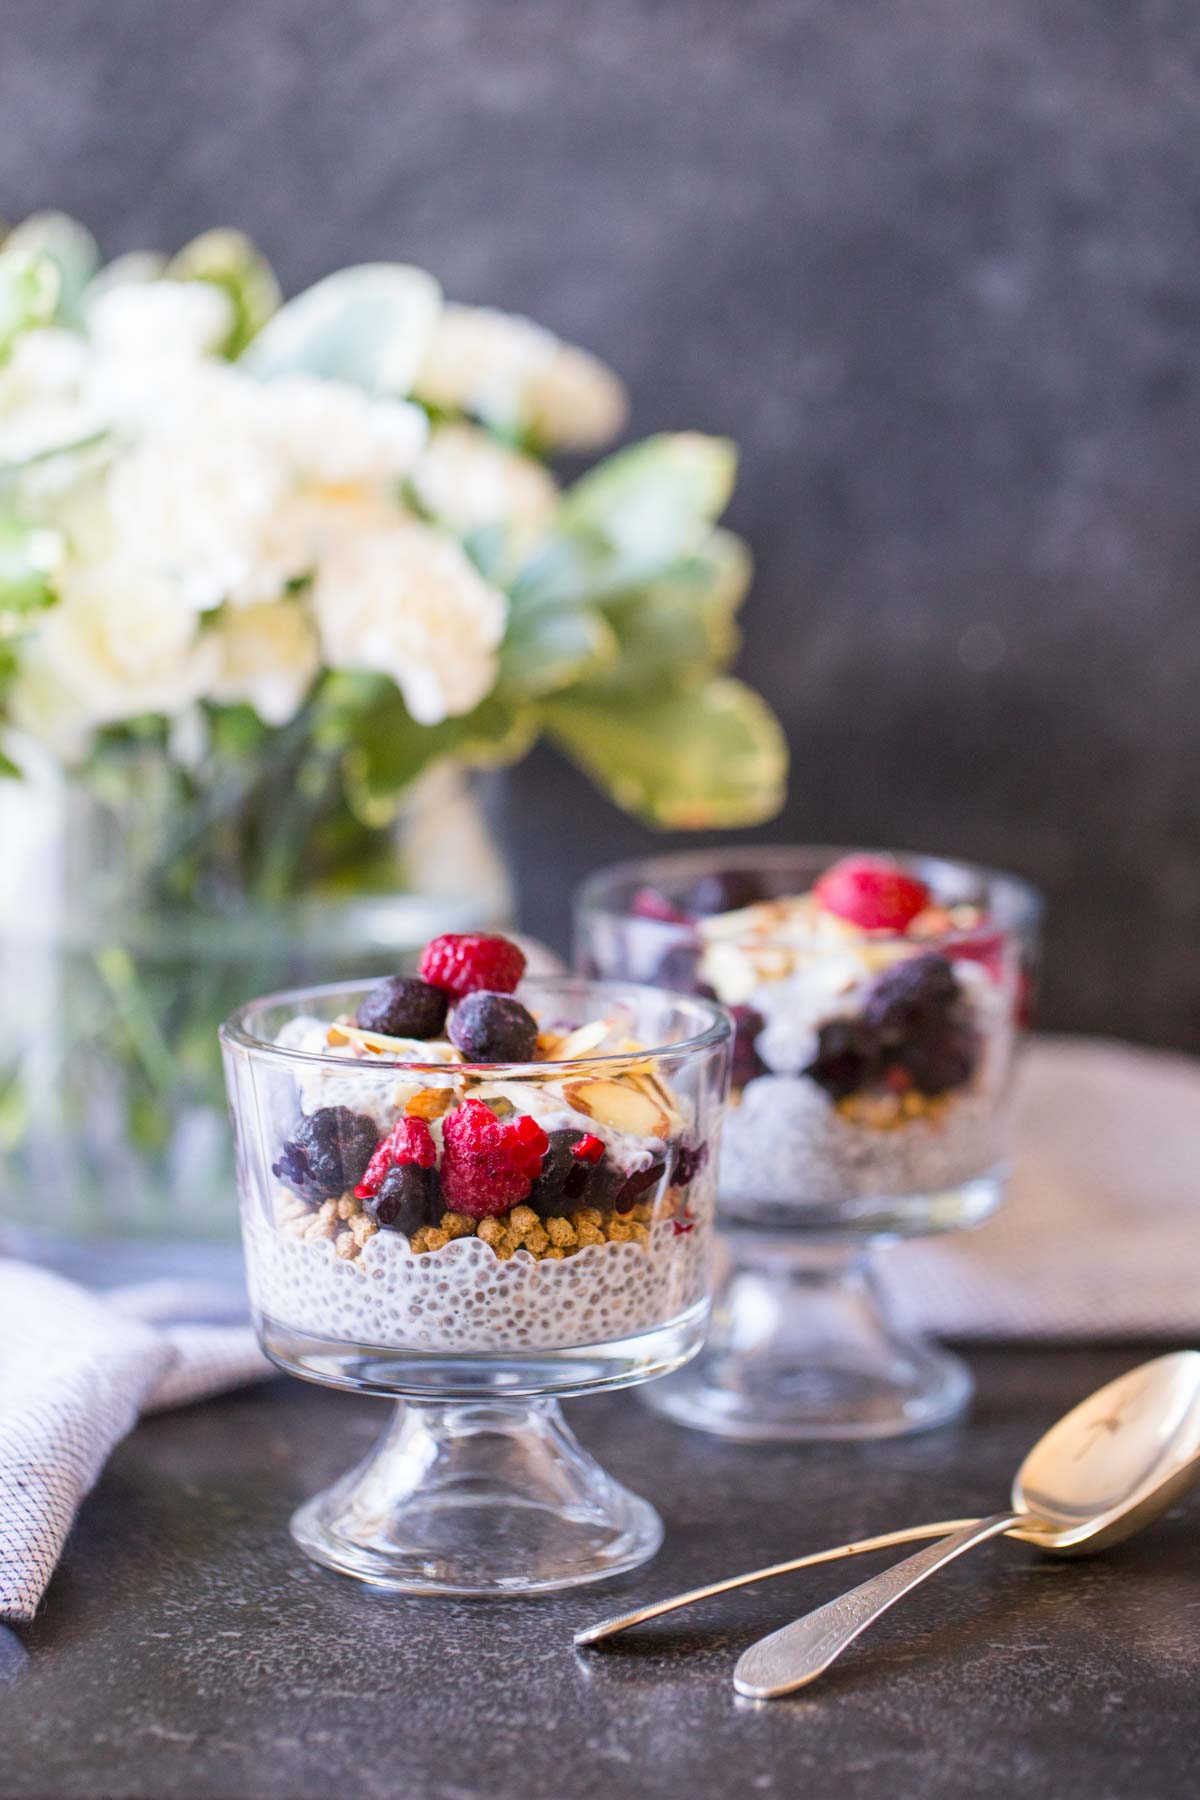 Chia Pudding Parfaits assembled in two small glass dishes, with two spoons next to them and a flower arrangement in the background.